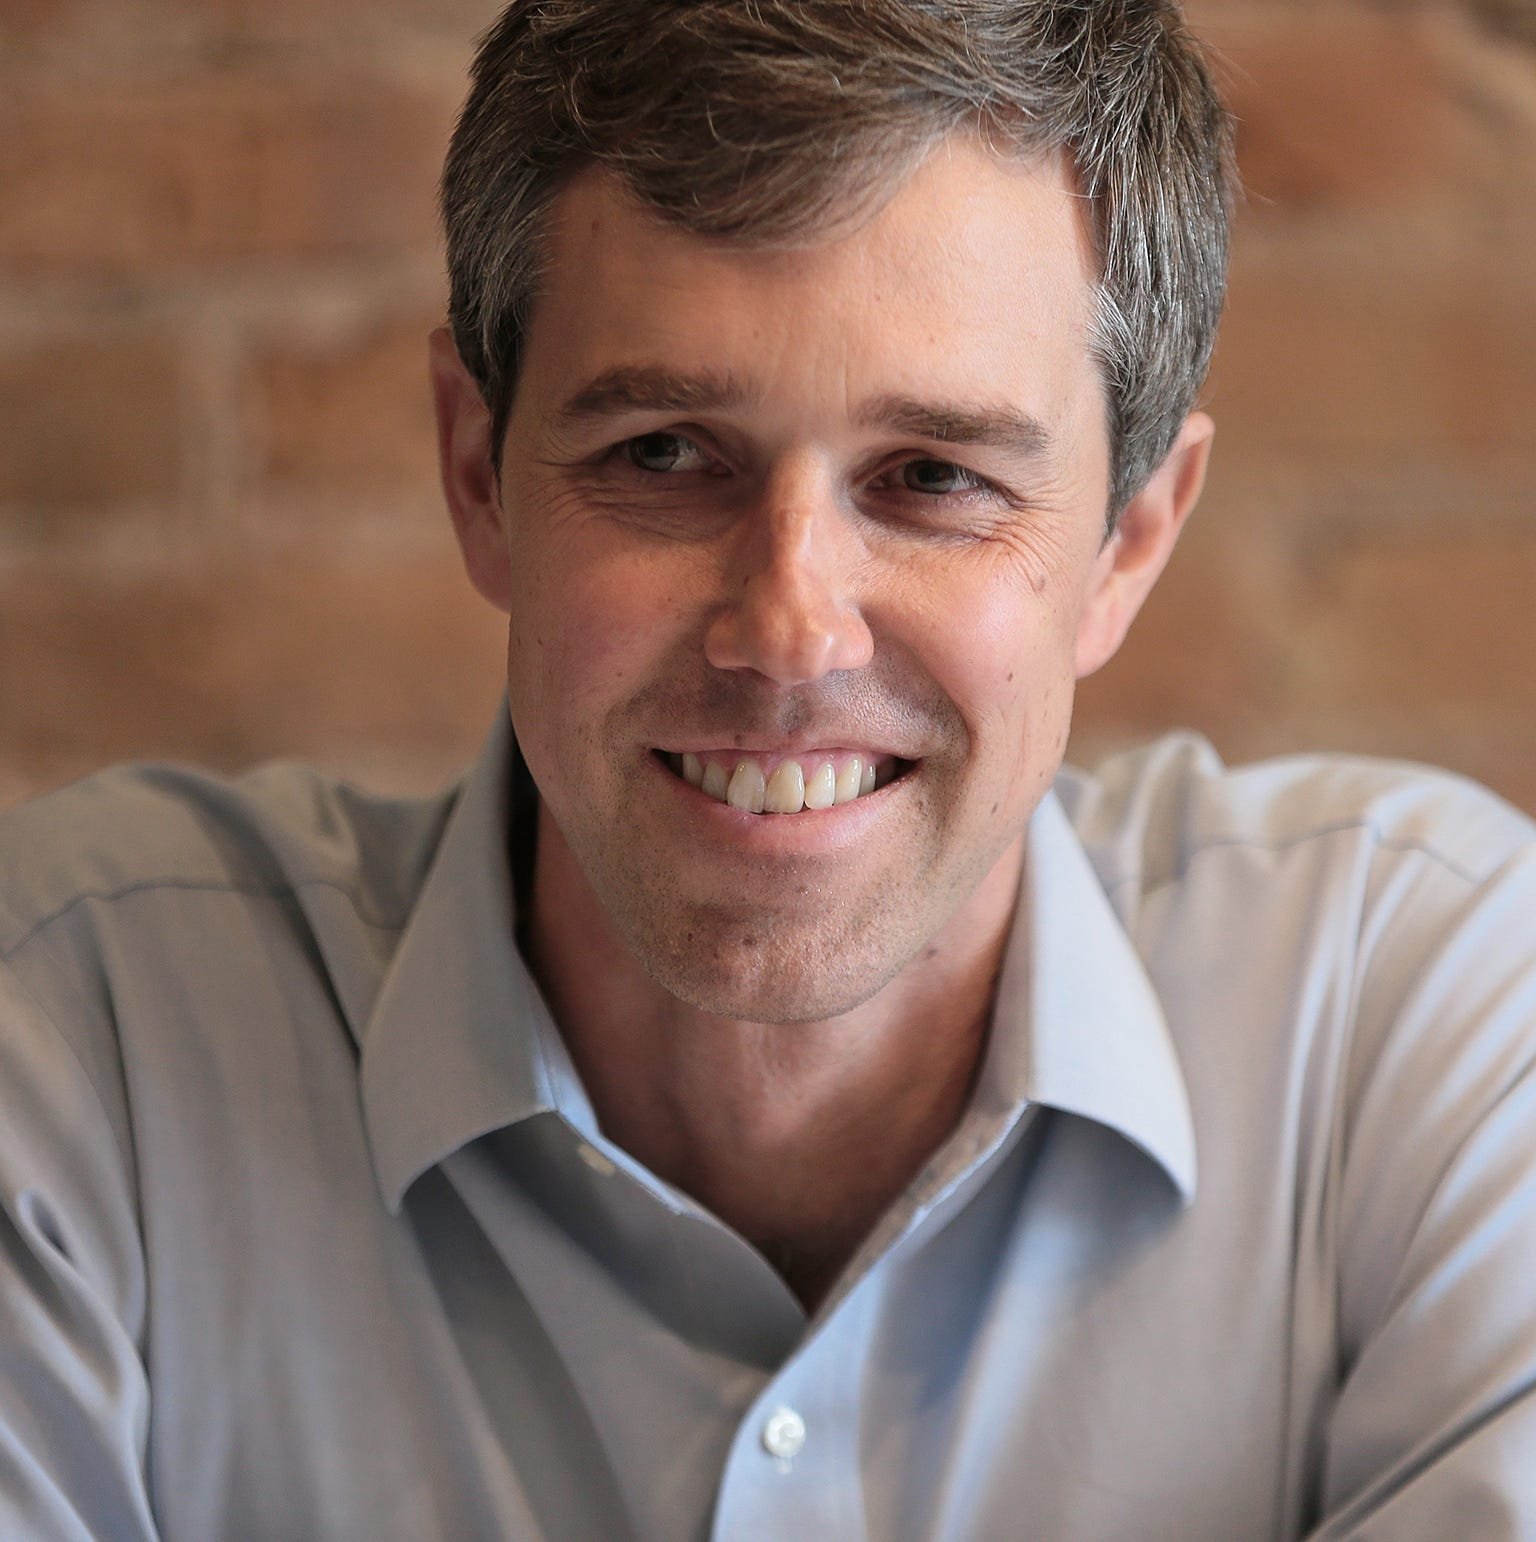 Exclusive: Beto O'Rourke discusses run for president, why he's the one to battle Trump on border